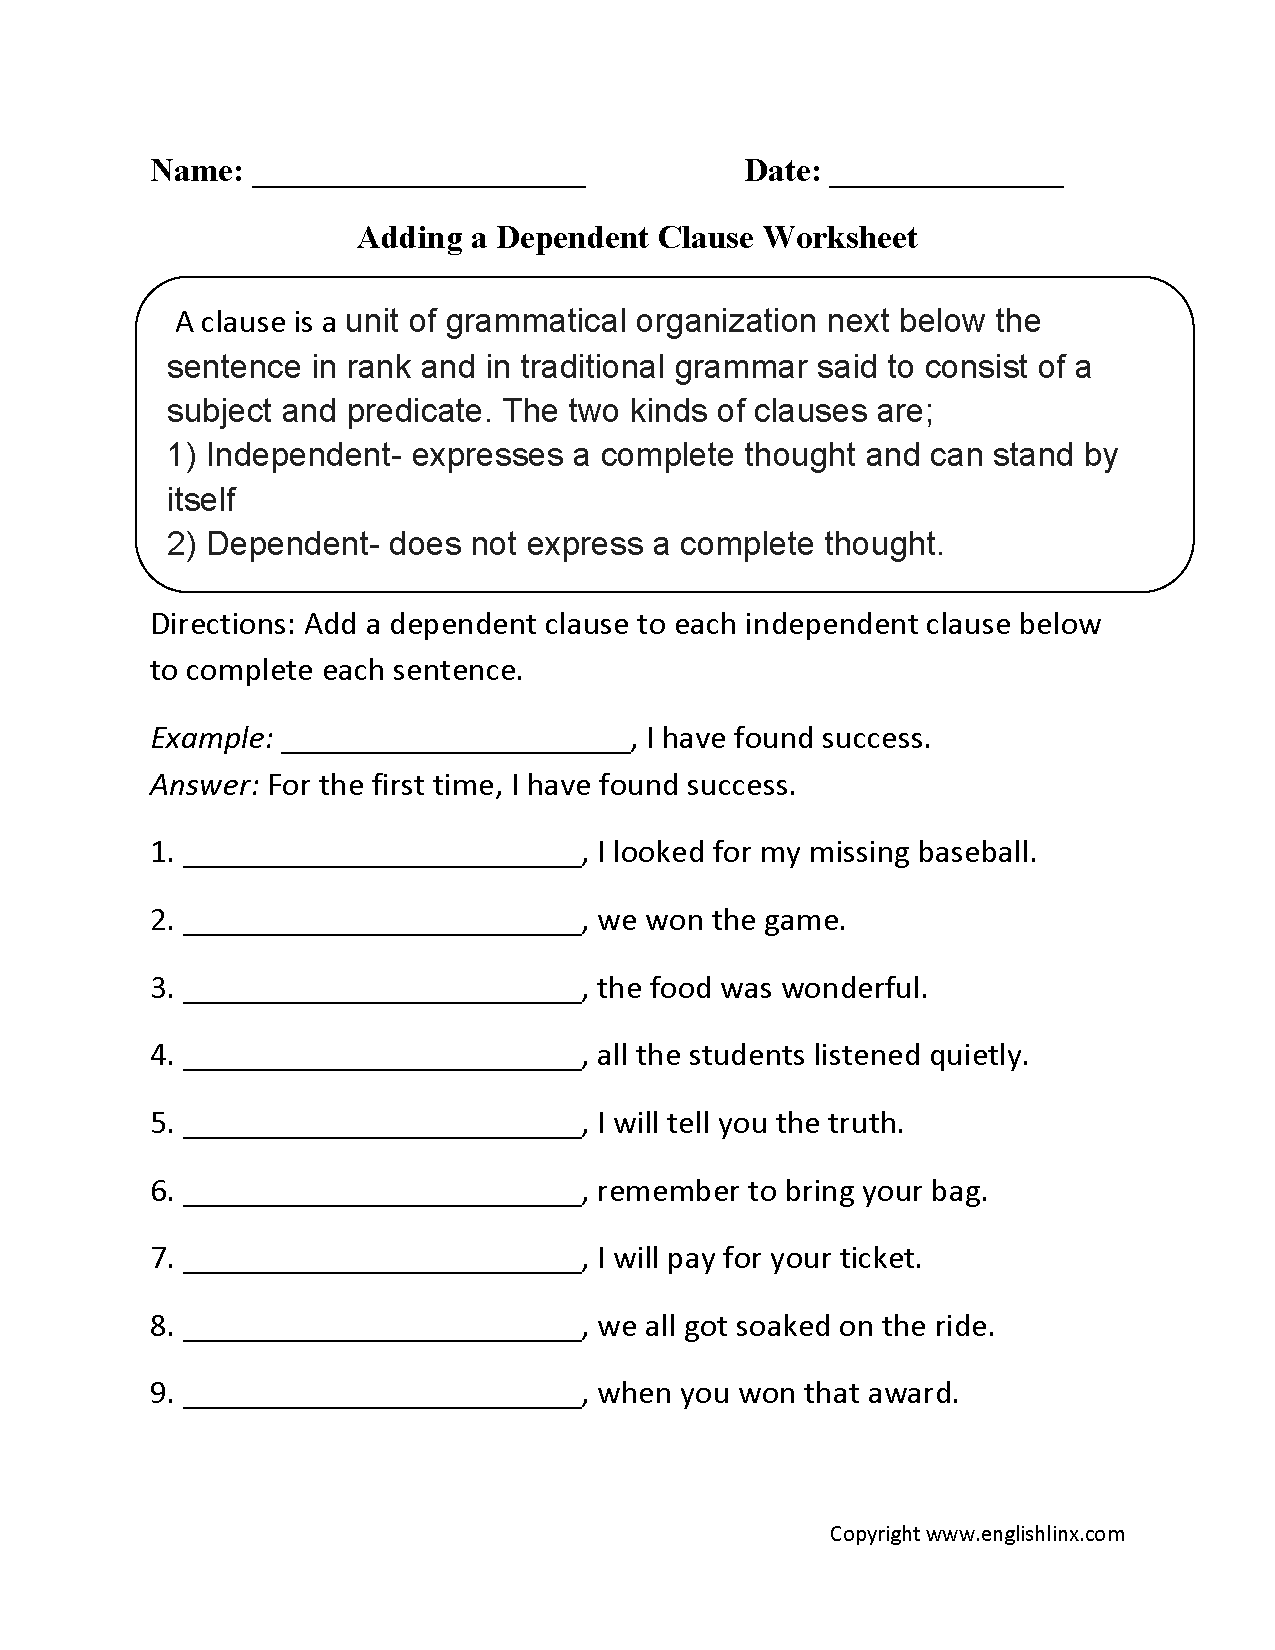 Adding a Dependent Clause Worksheet – Independent and Subordinate Clauses Worksheet